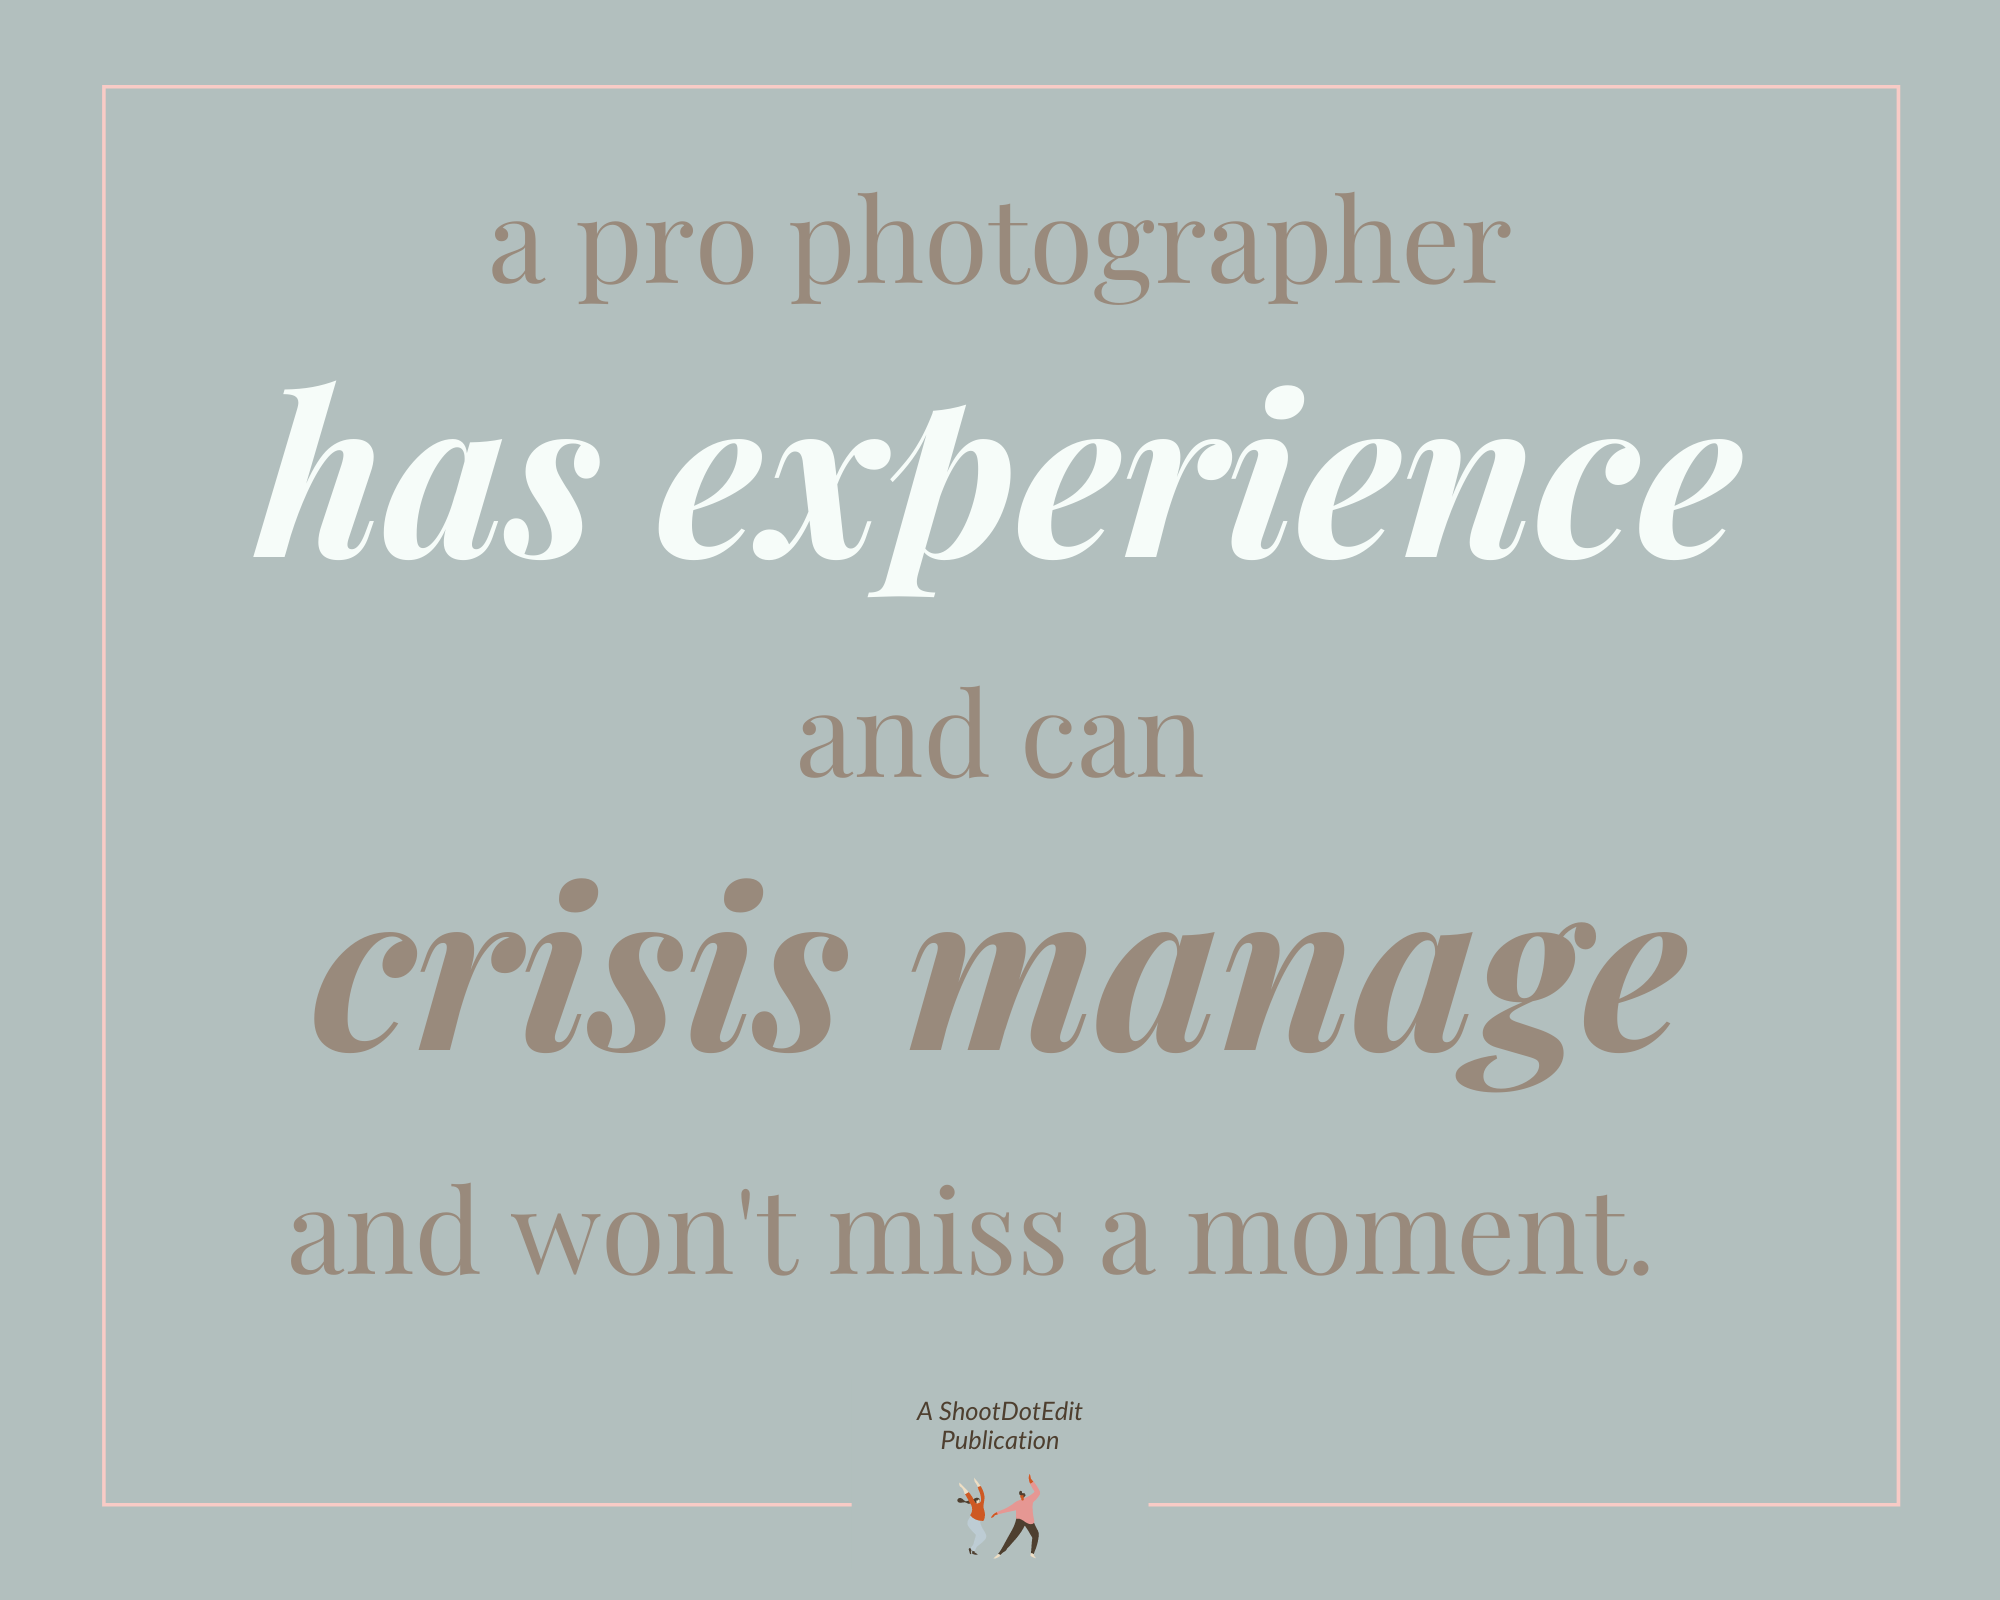 Graphic stating - a pro photographer has experience and can crisis manage and won't miss a moment